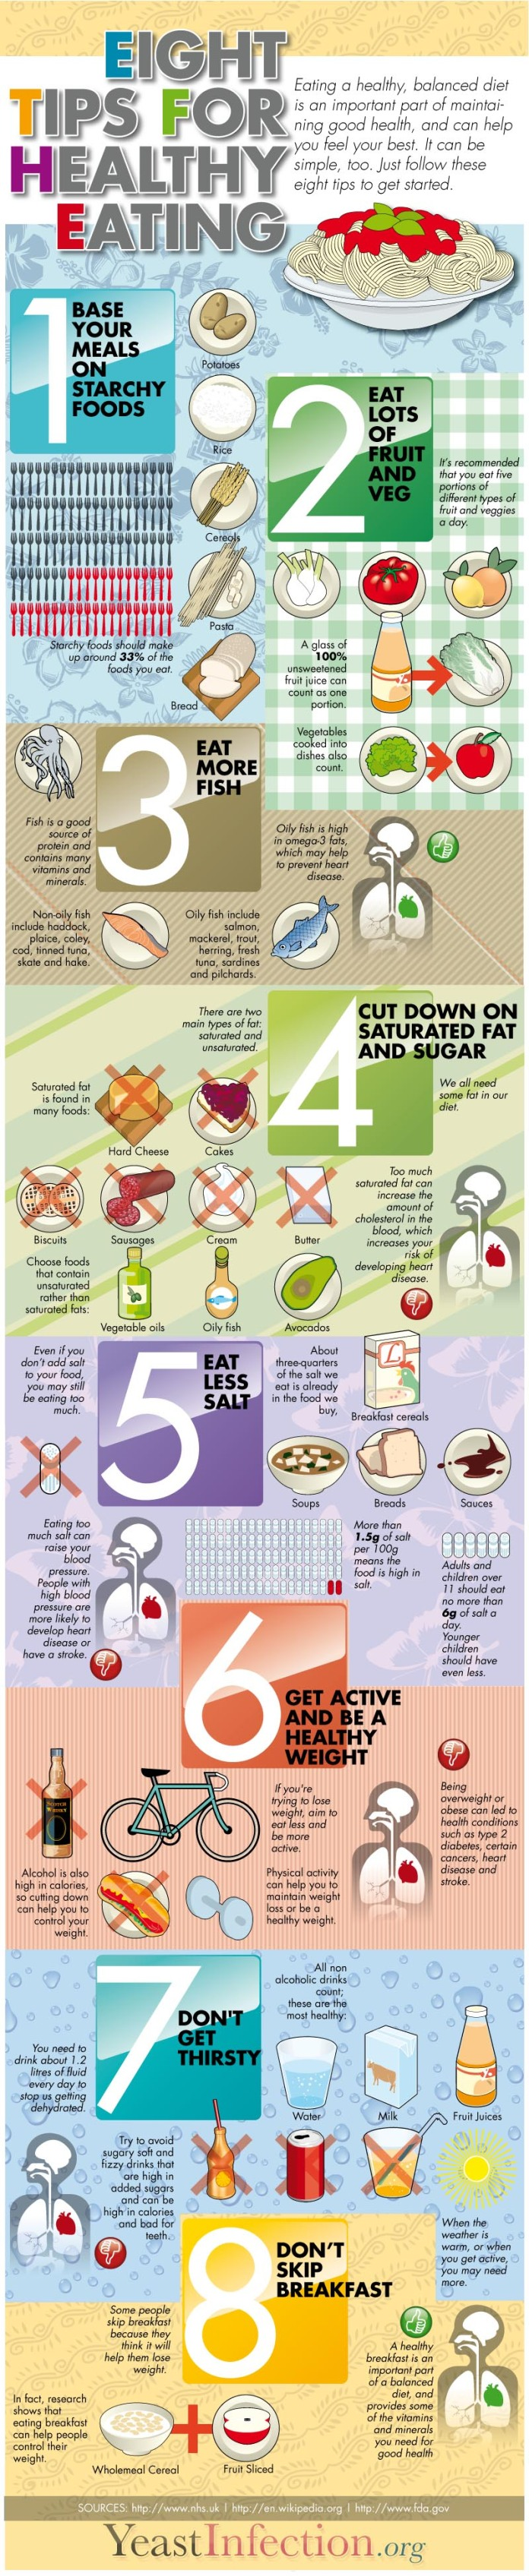 Infographic: 8 tips for healthy eating